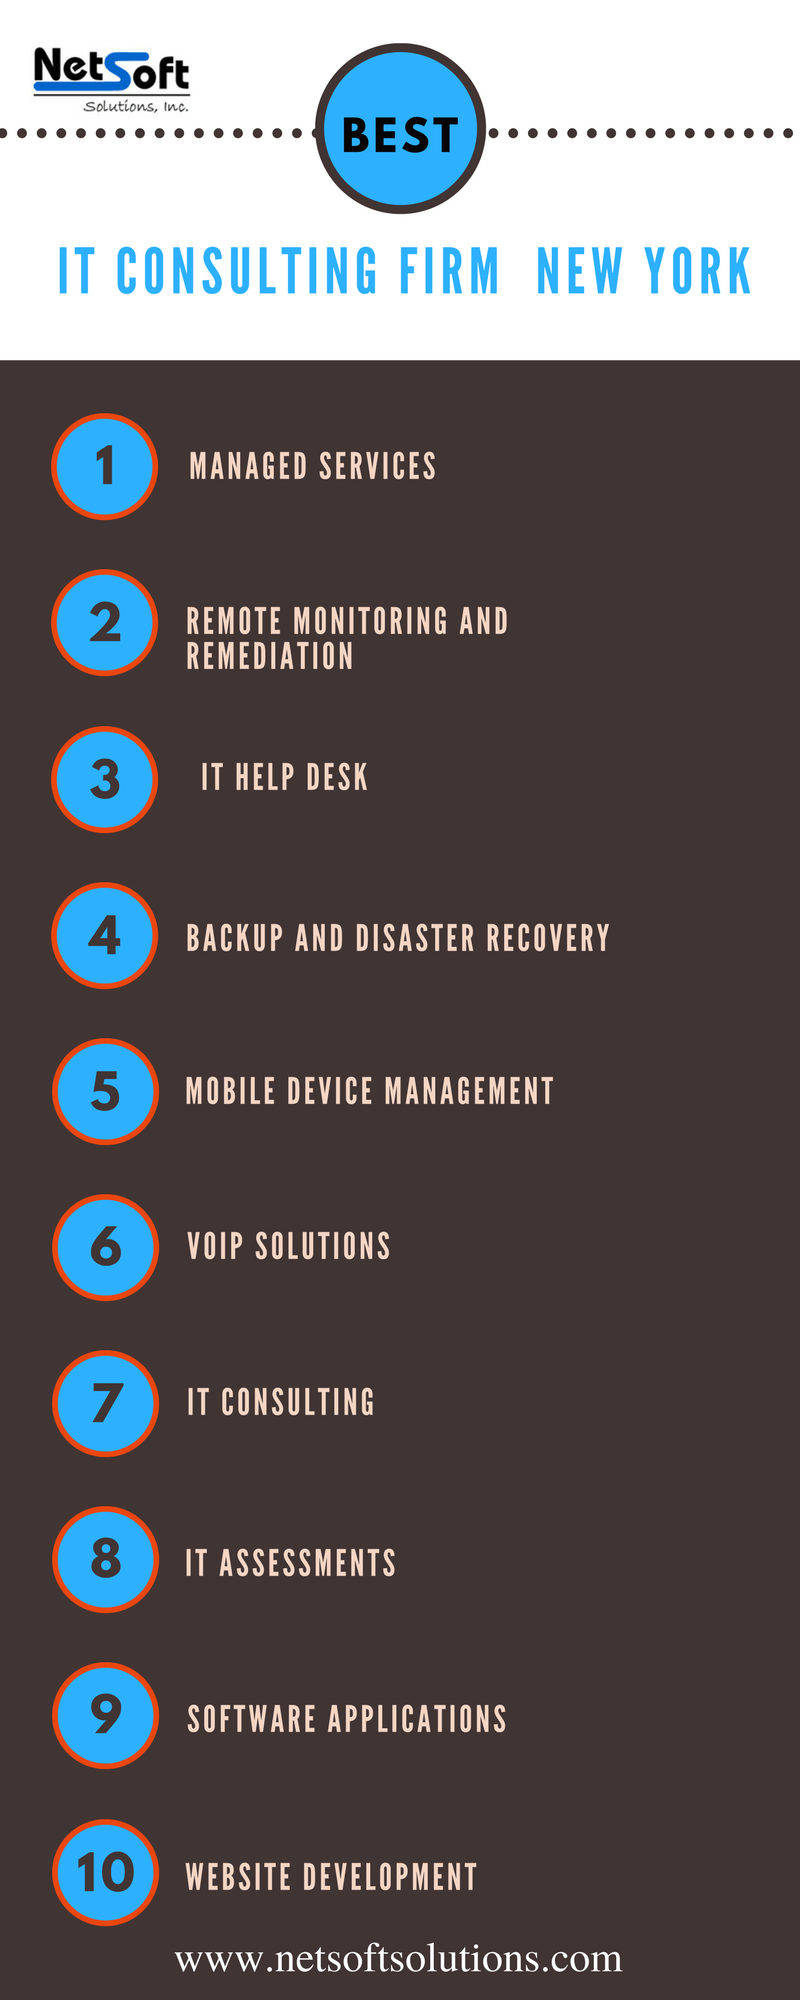 Best It Consulting Firm New York Netsoft Solutions Inc Is The Best It Consulting In New York That Provides T Voip Solutions Mobile Device Management Solutions